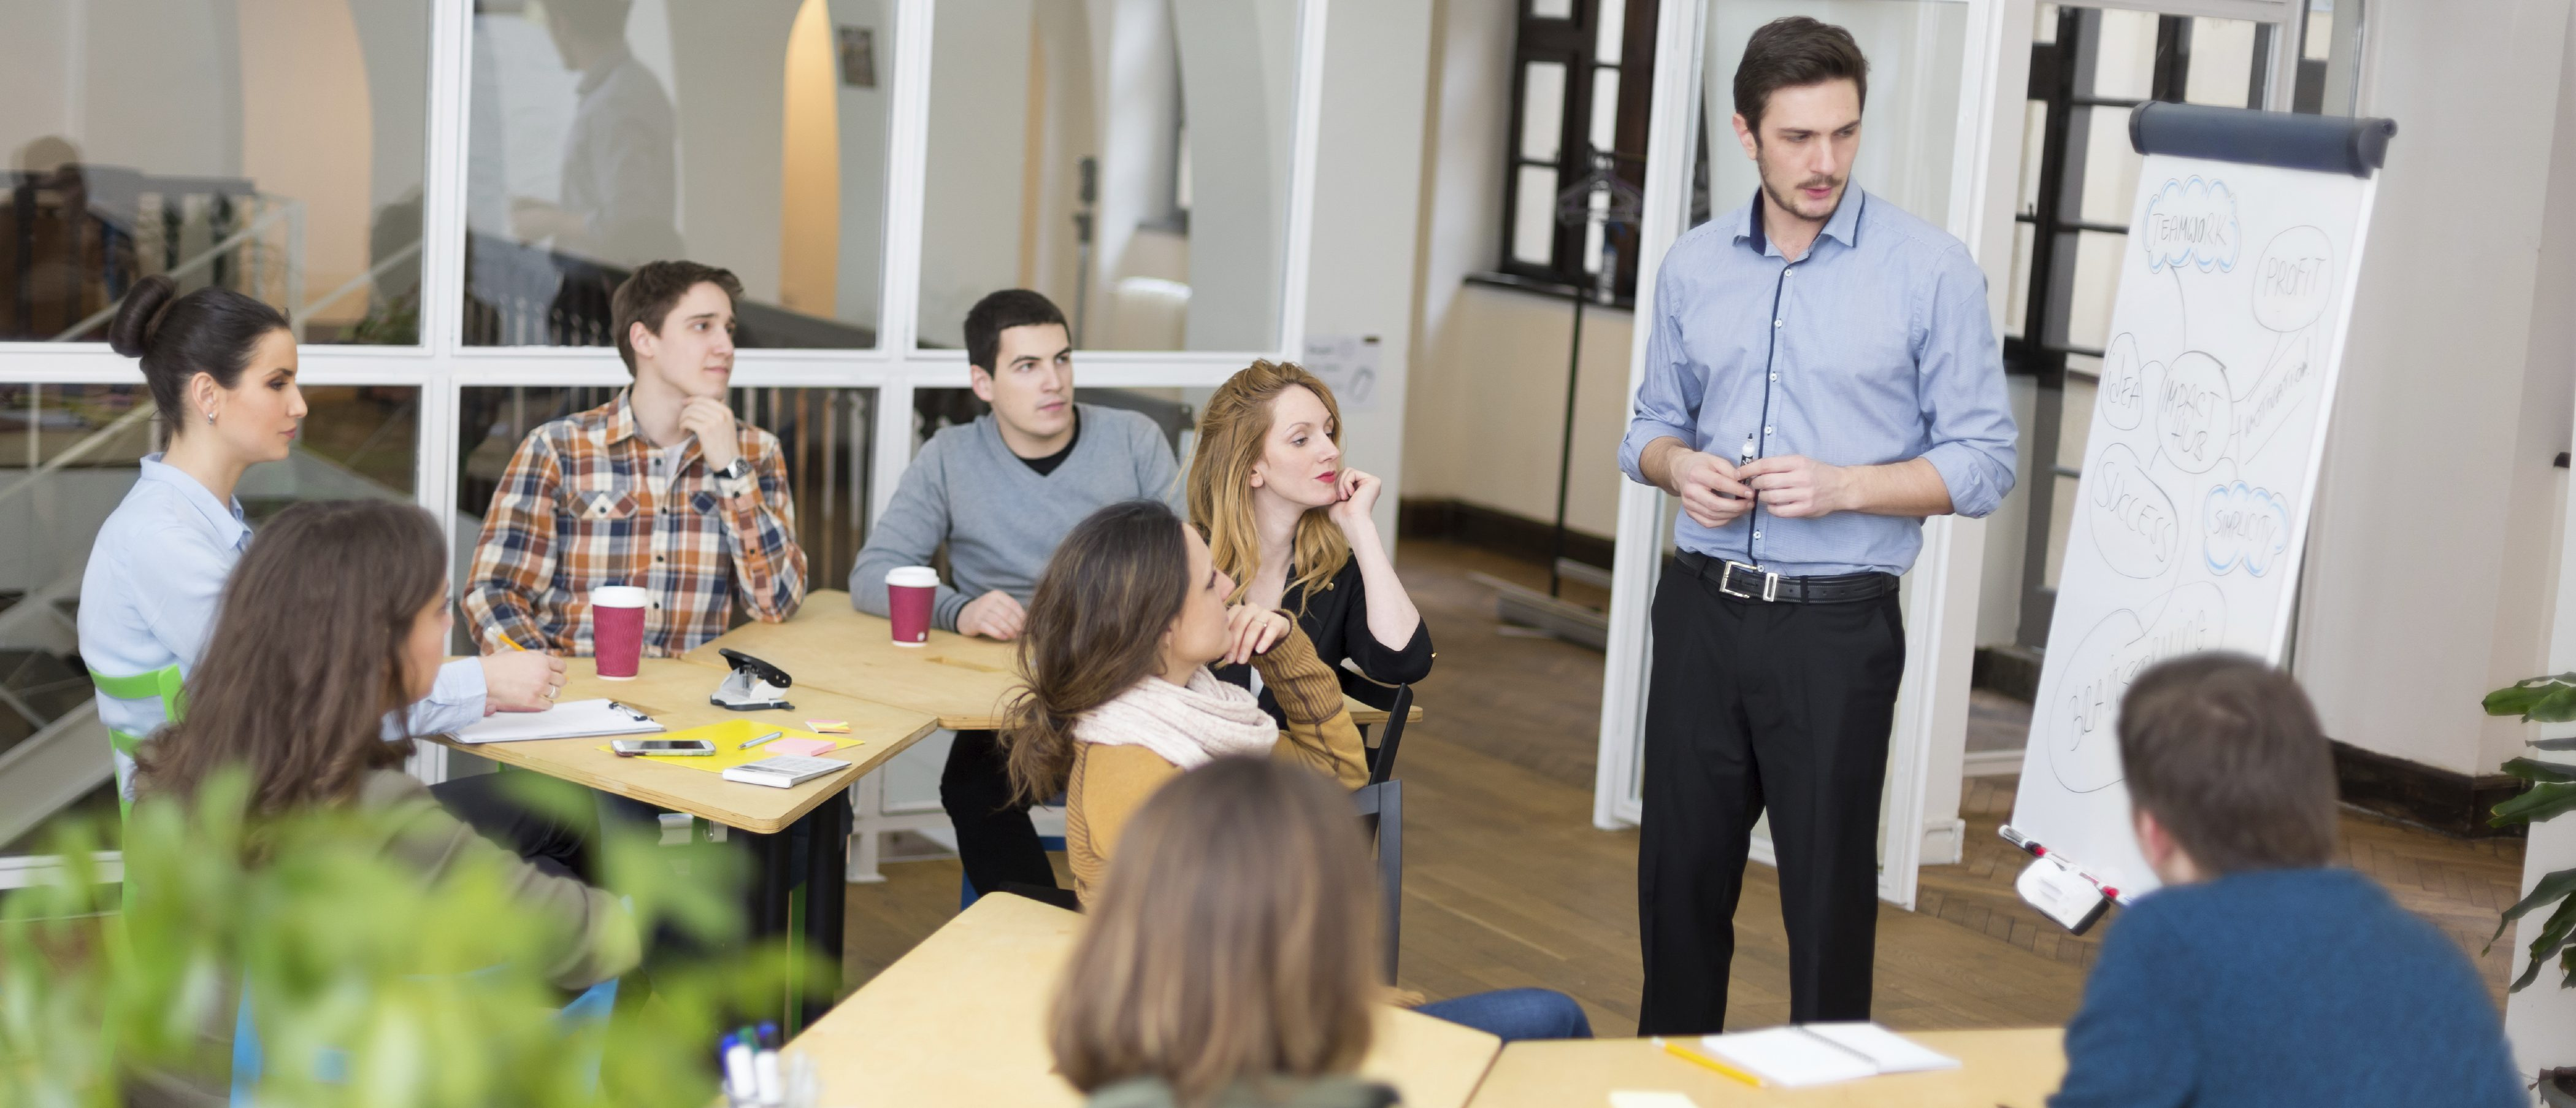 Group of university student sitting in classroom,  listening to lecture